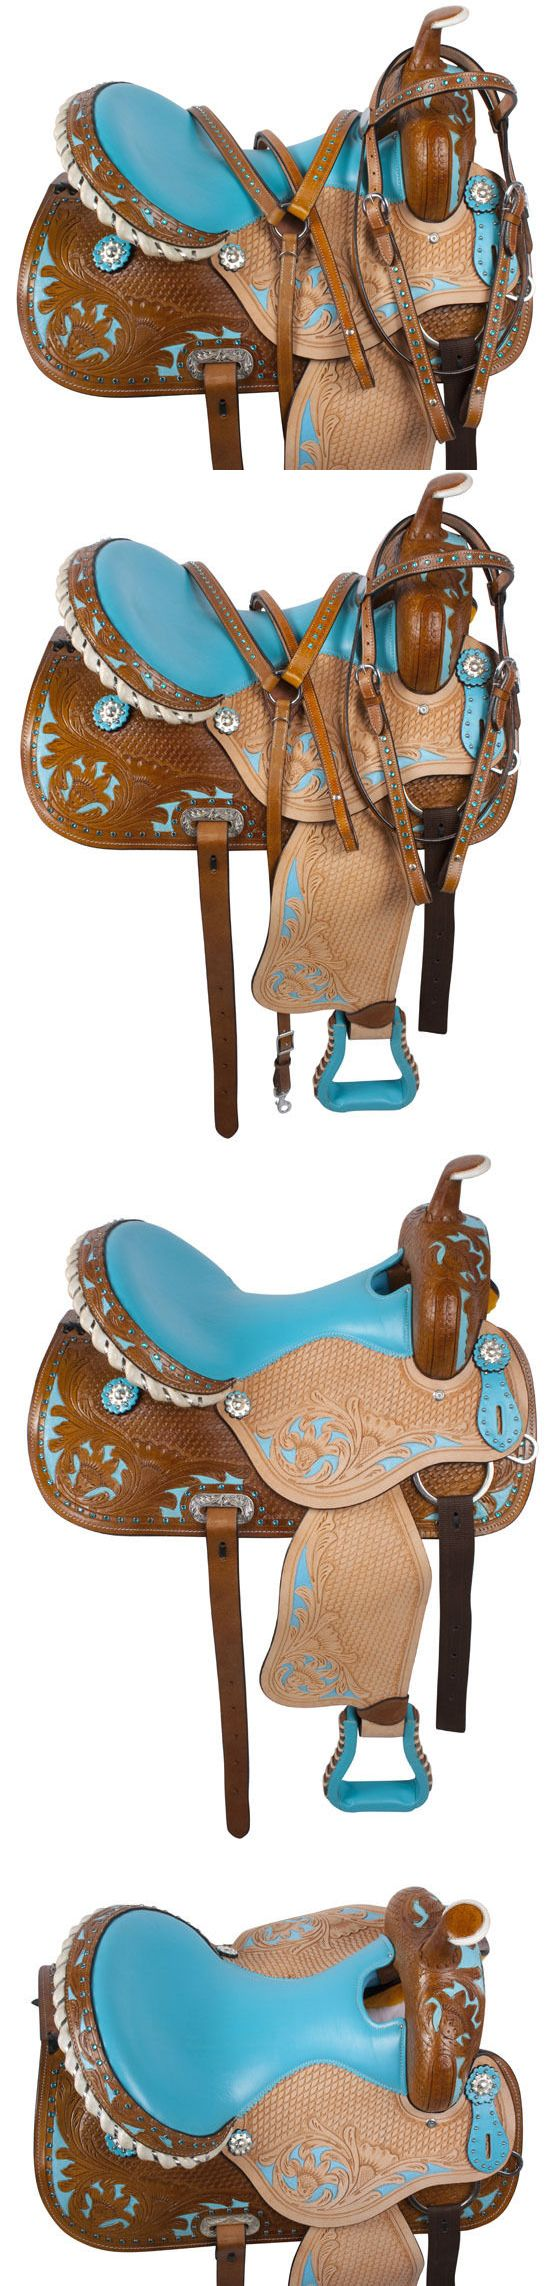 Saddles 47291: 15 16 Turquoise Barrel Racing Racer Pleasure Trail Western Horse Saddle Tack Pkg BUY IT NOW ONLY: $284.99